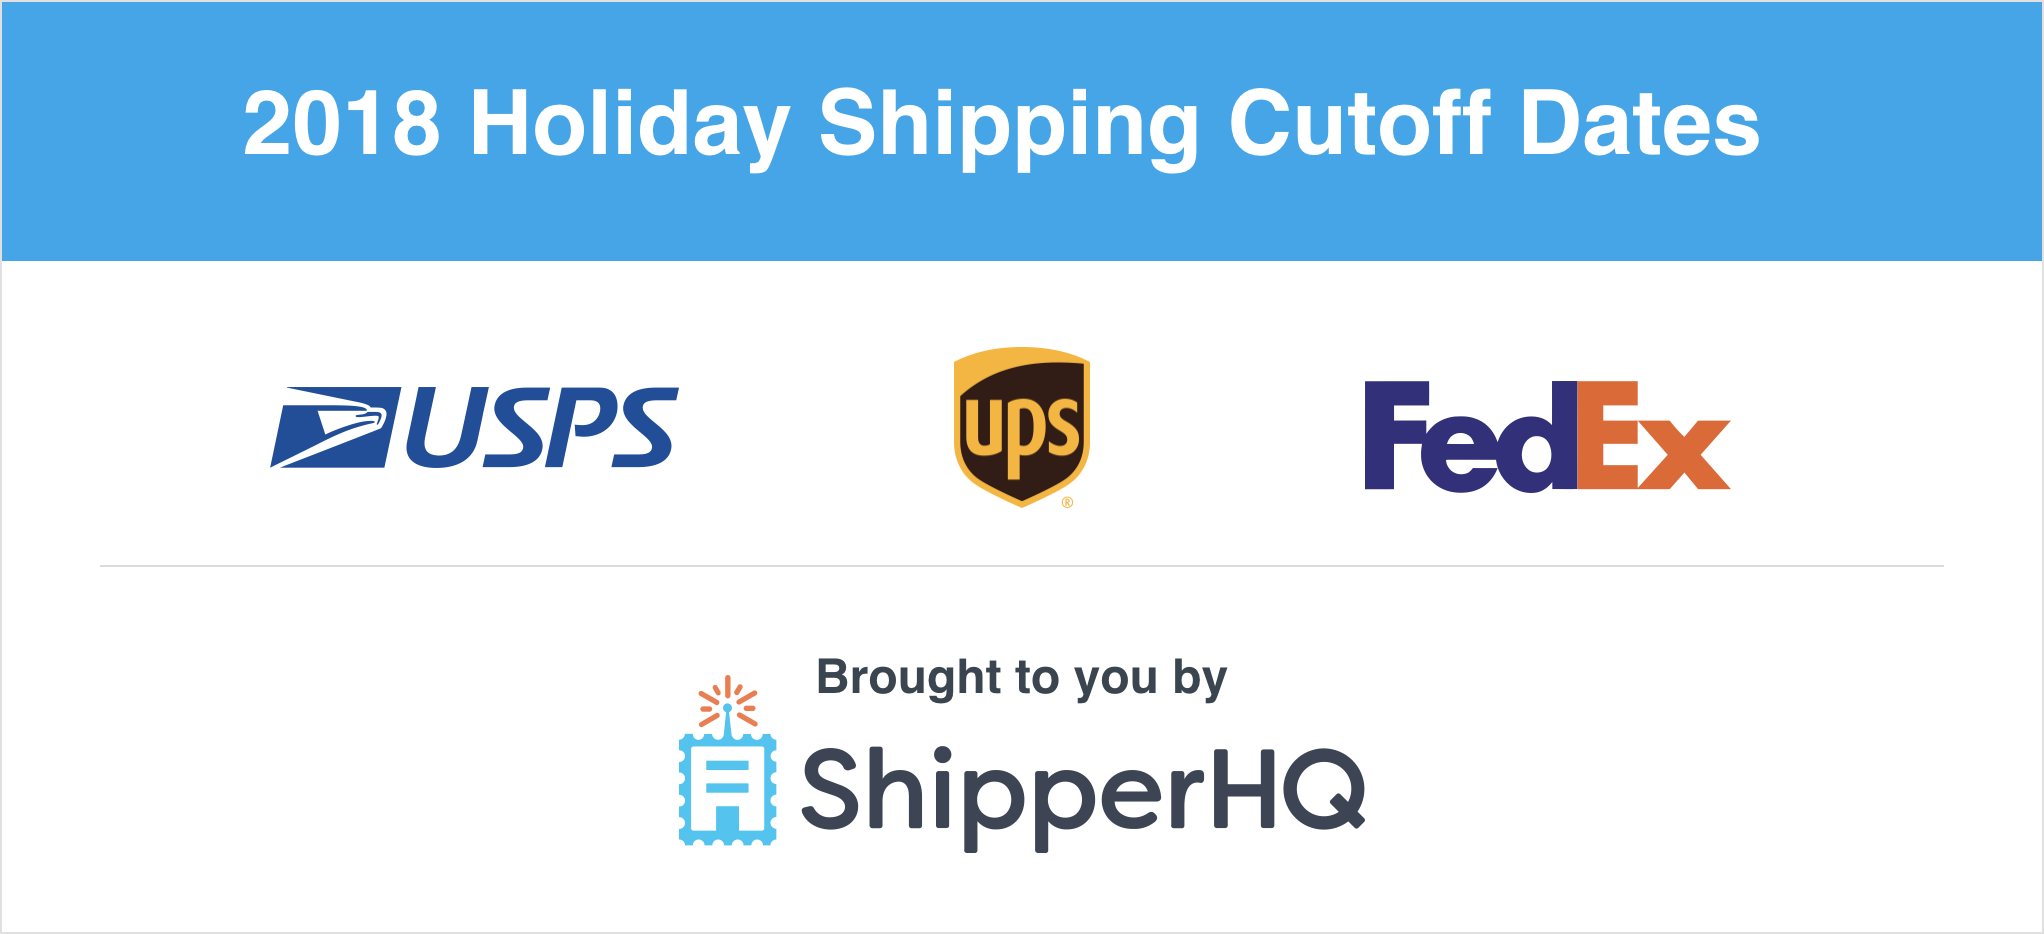 2018 Holiday Shipping Cutoff Dates